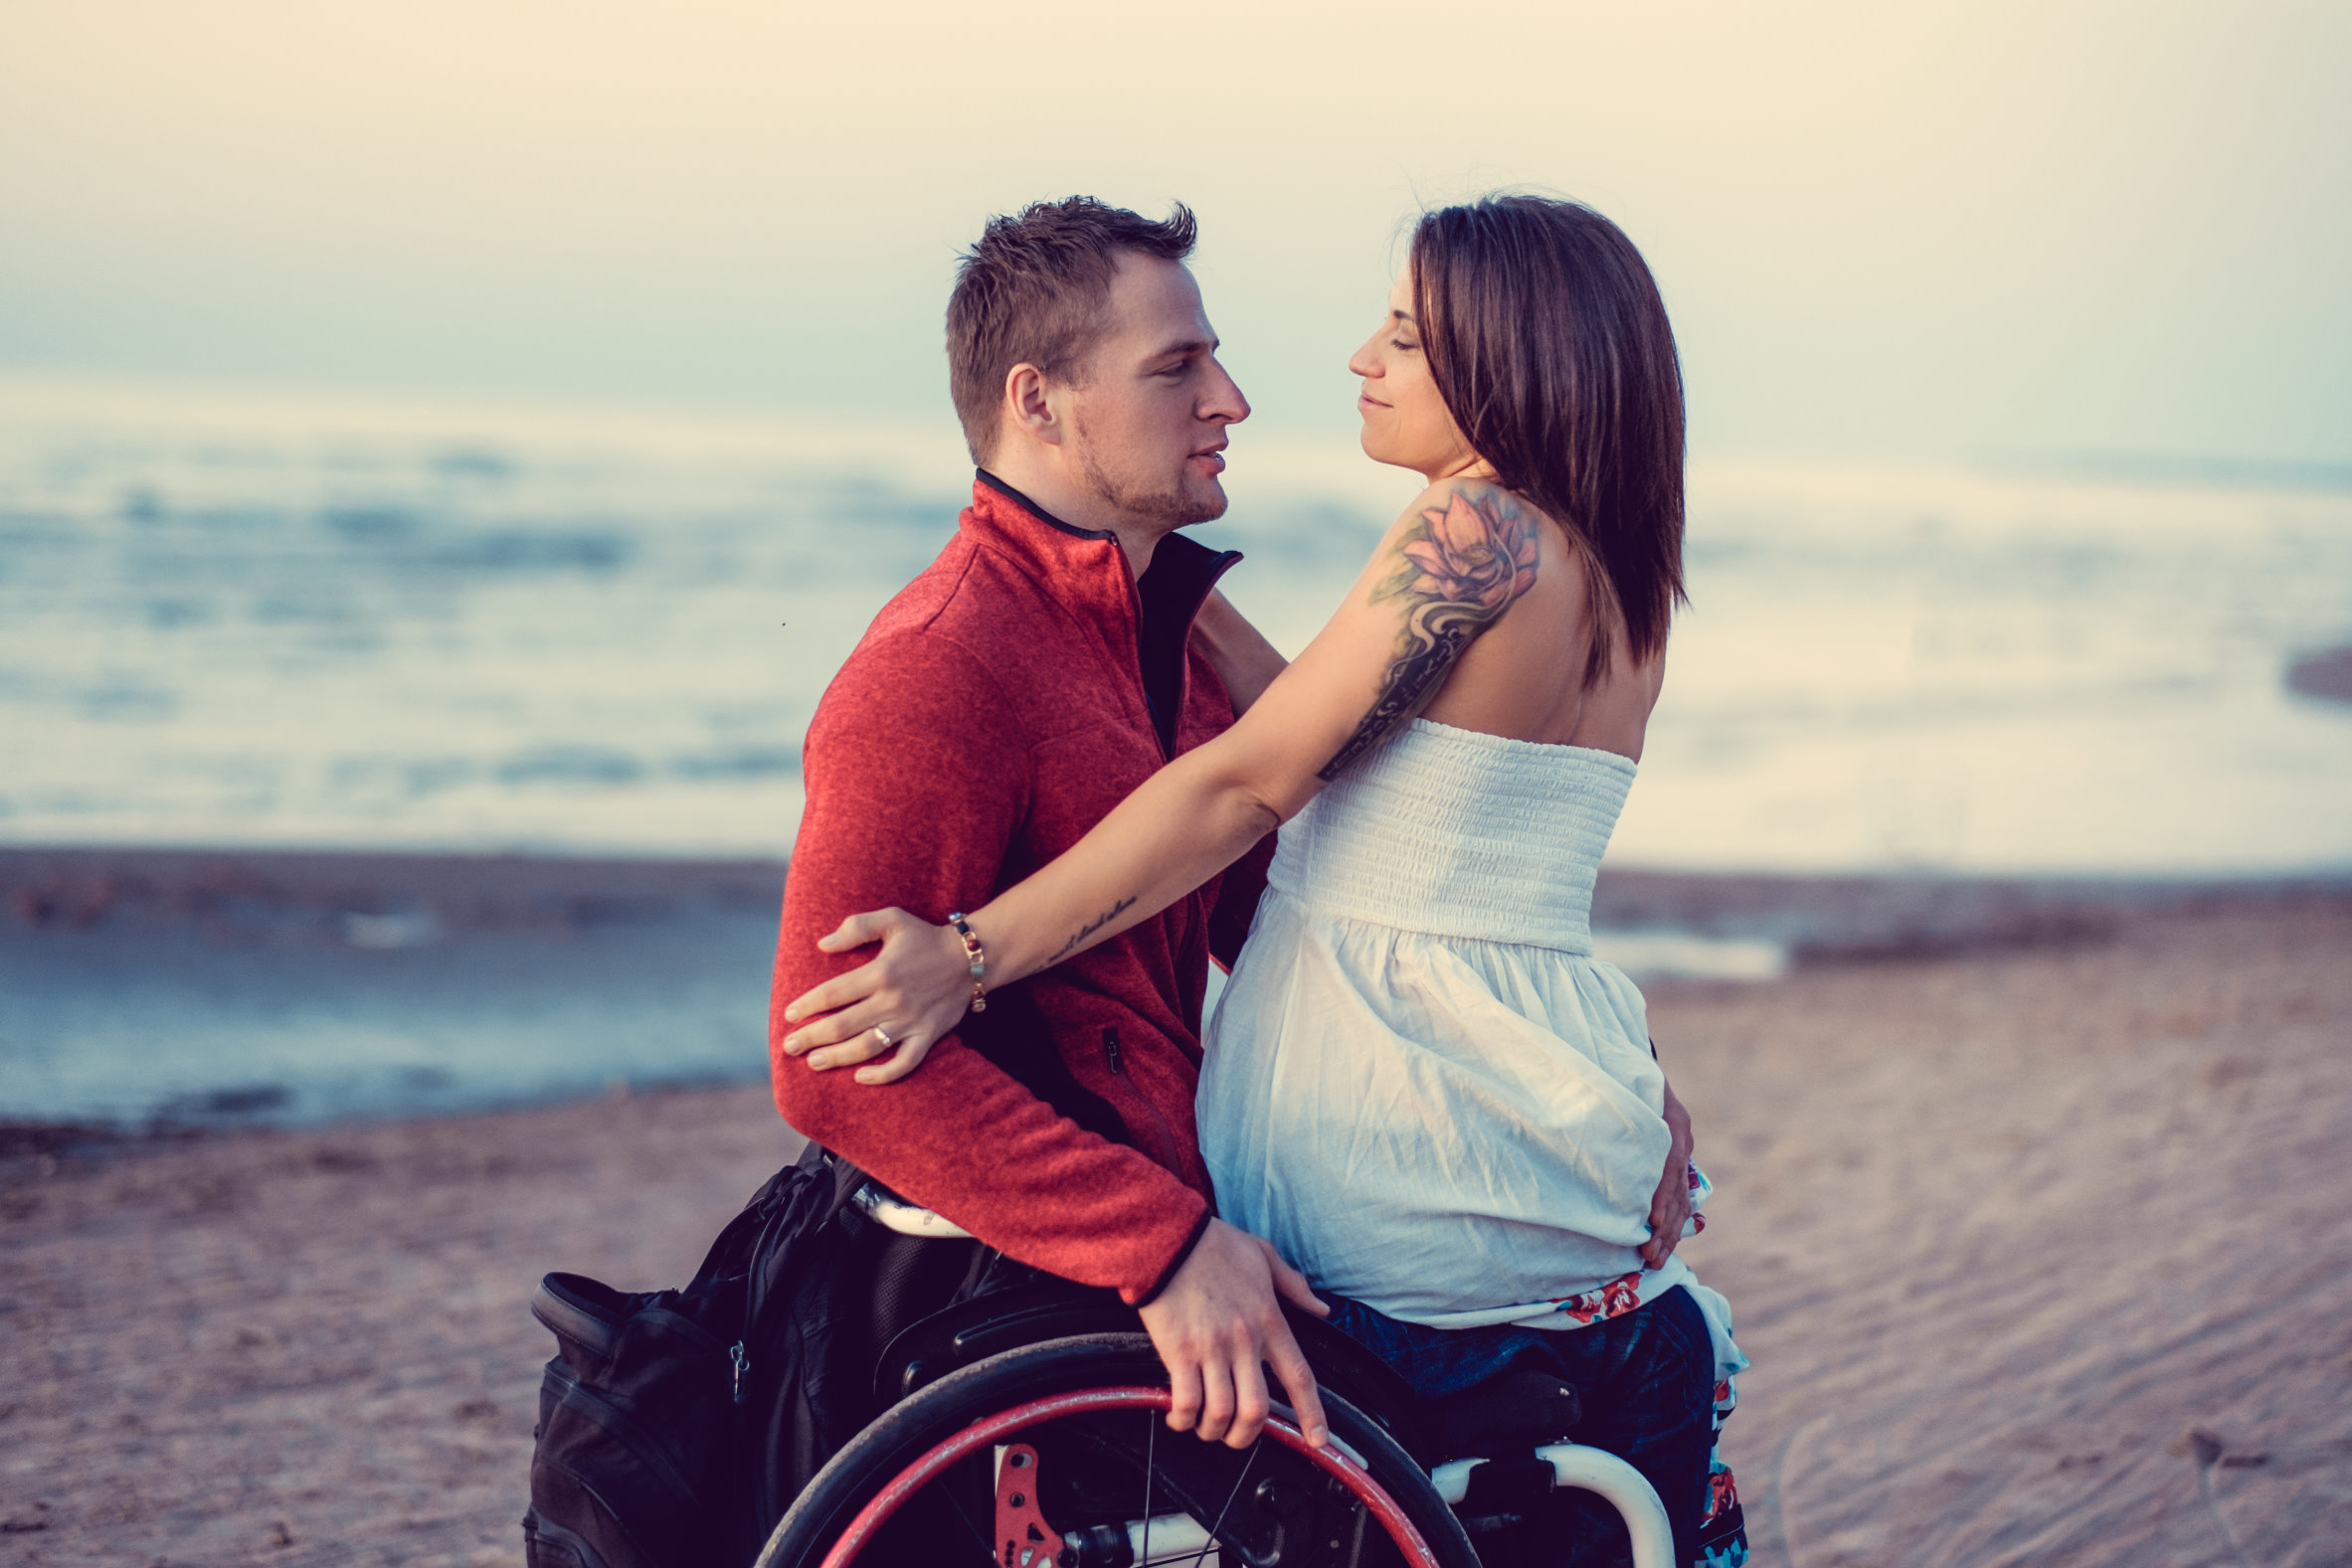 Disabled Girls - Handicapped Dating Dating for Handicapped